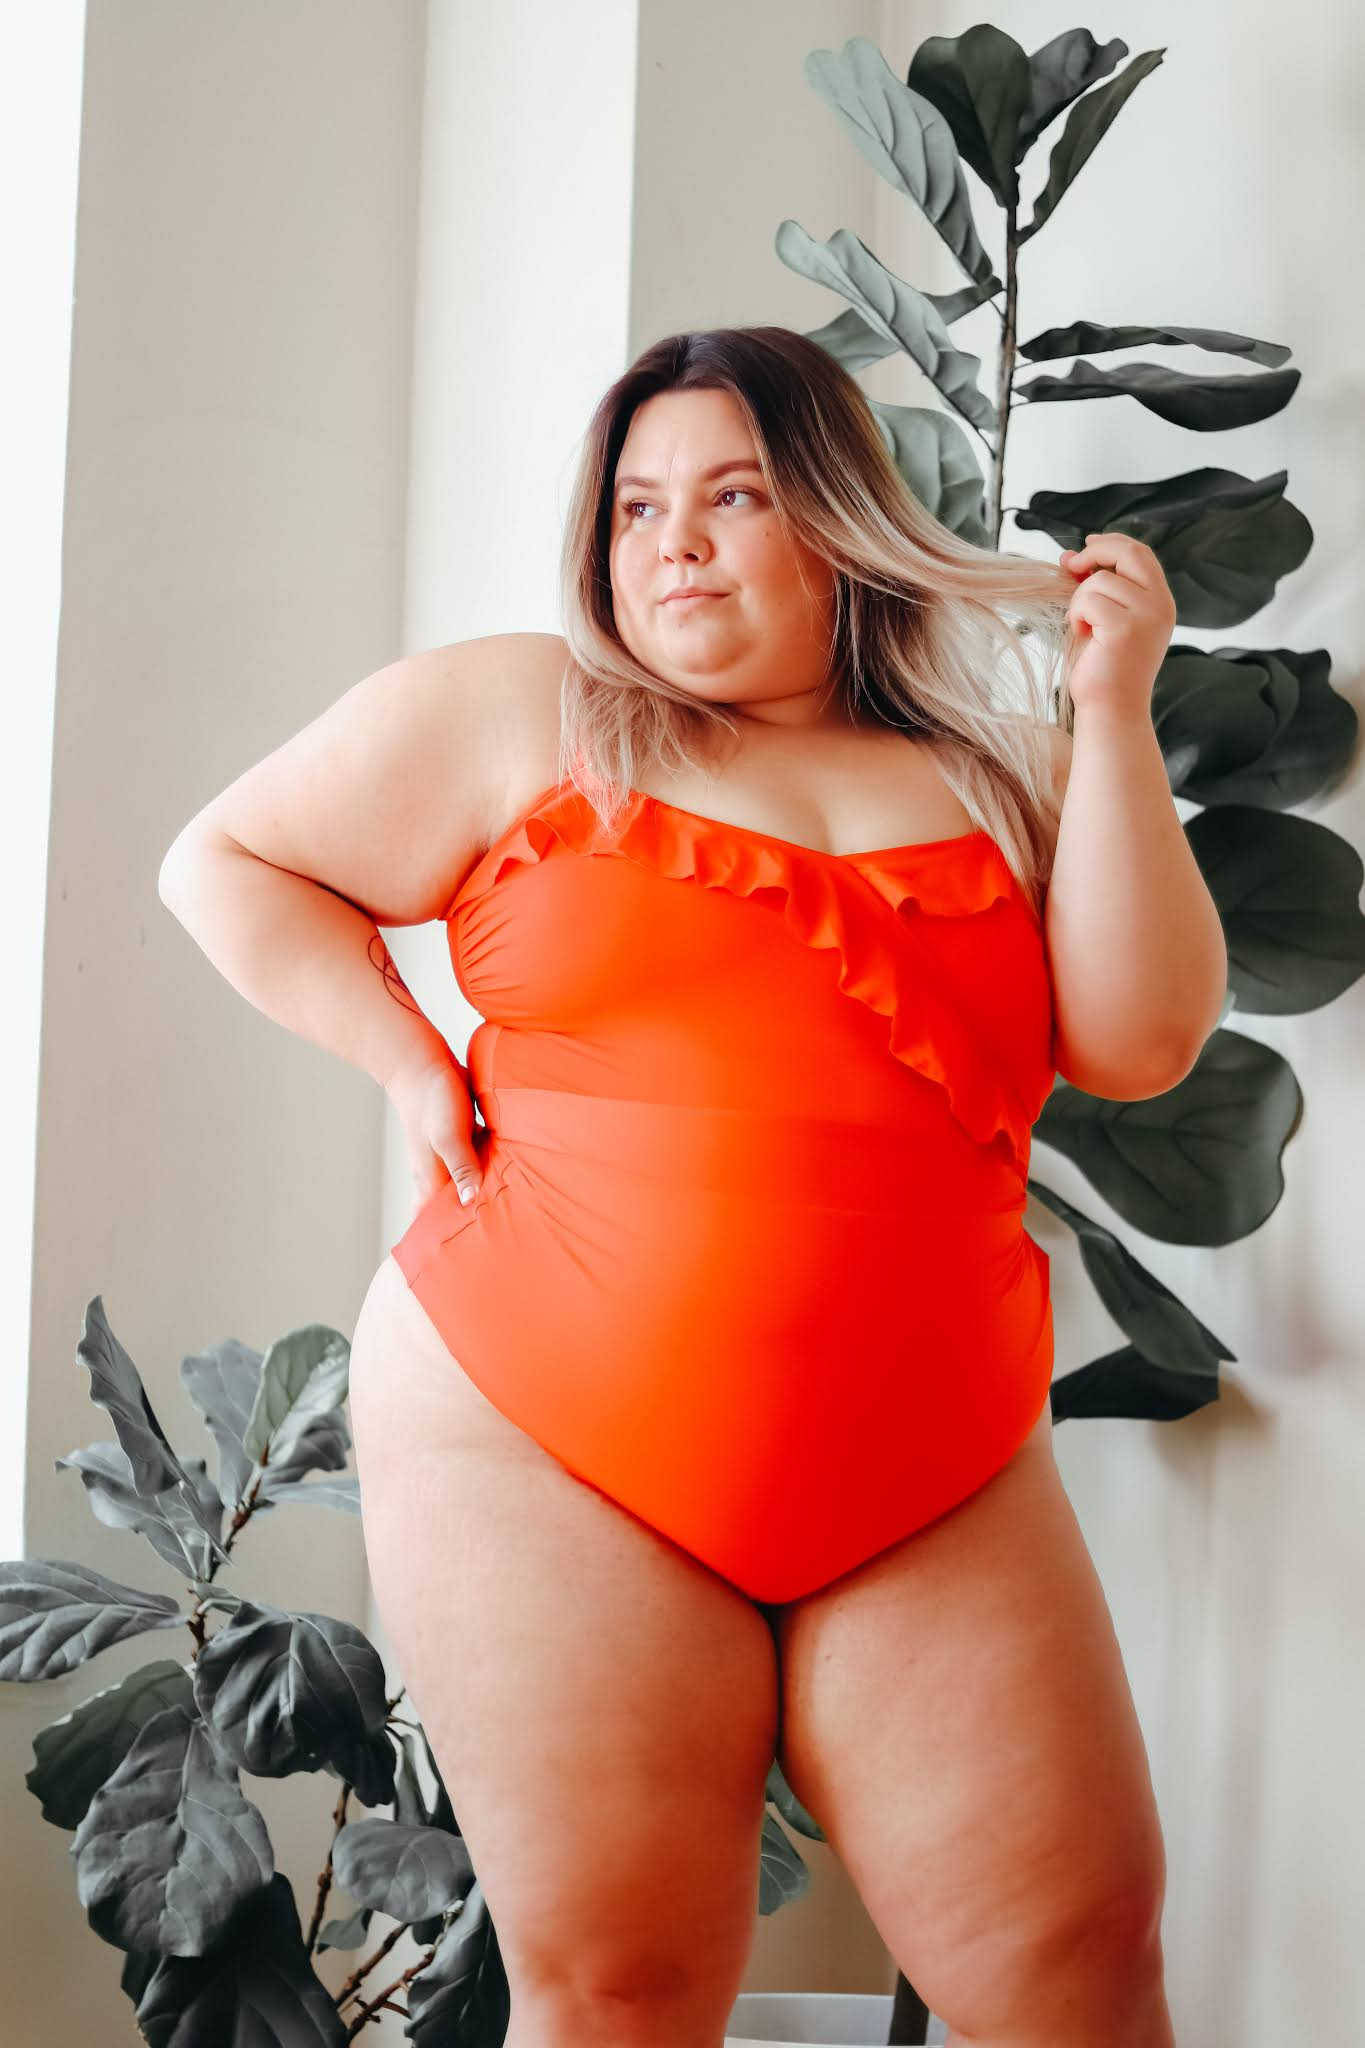 Chicago Plus Size Petite Fashion Blogger, influencer, YouTuber, and model Natalie Craig, of Natalie in the City, searches for sexy, confidence-boosting plus size one pieces two pieces and swimsuits.